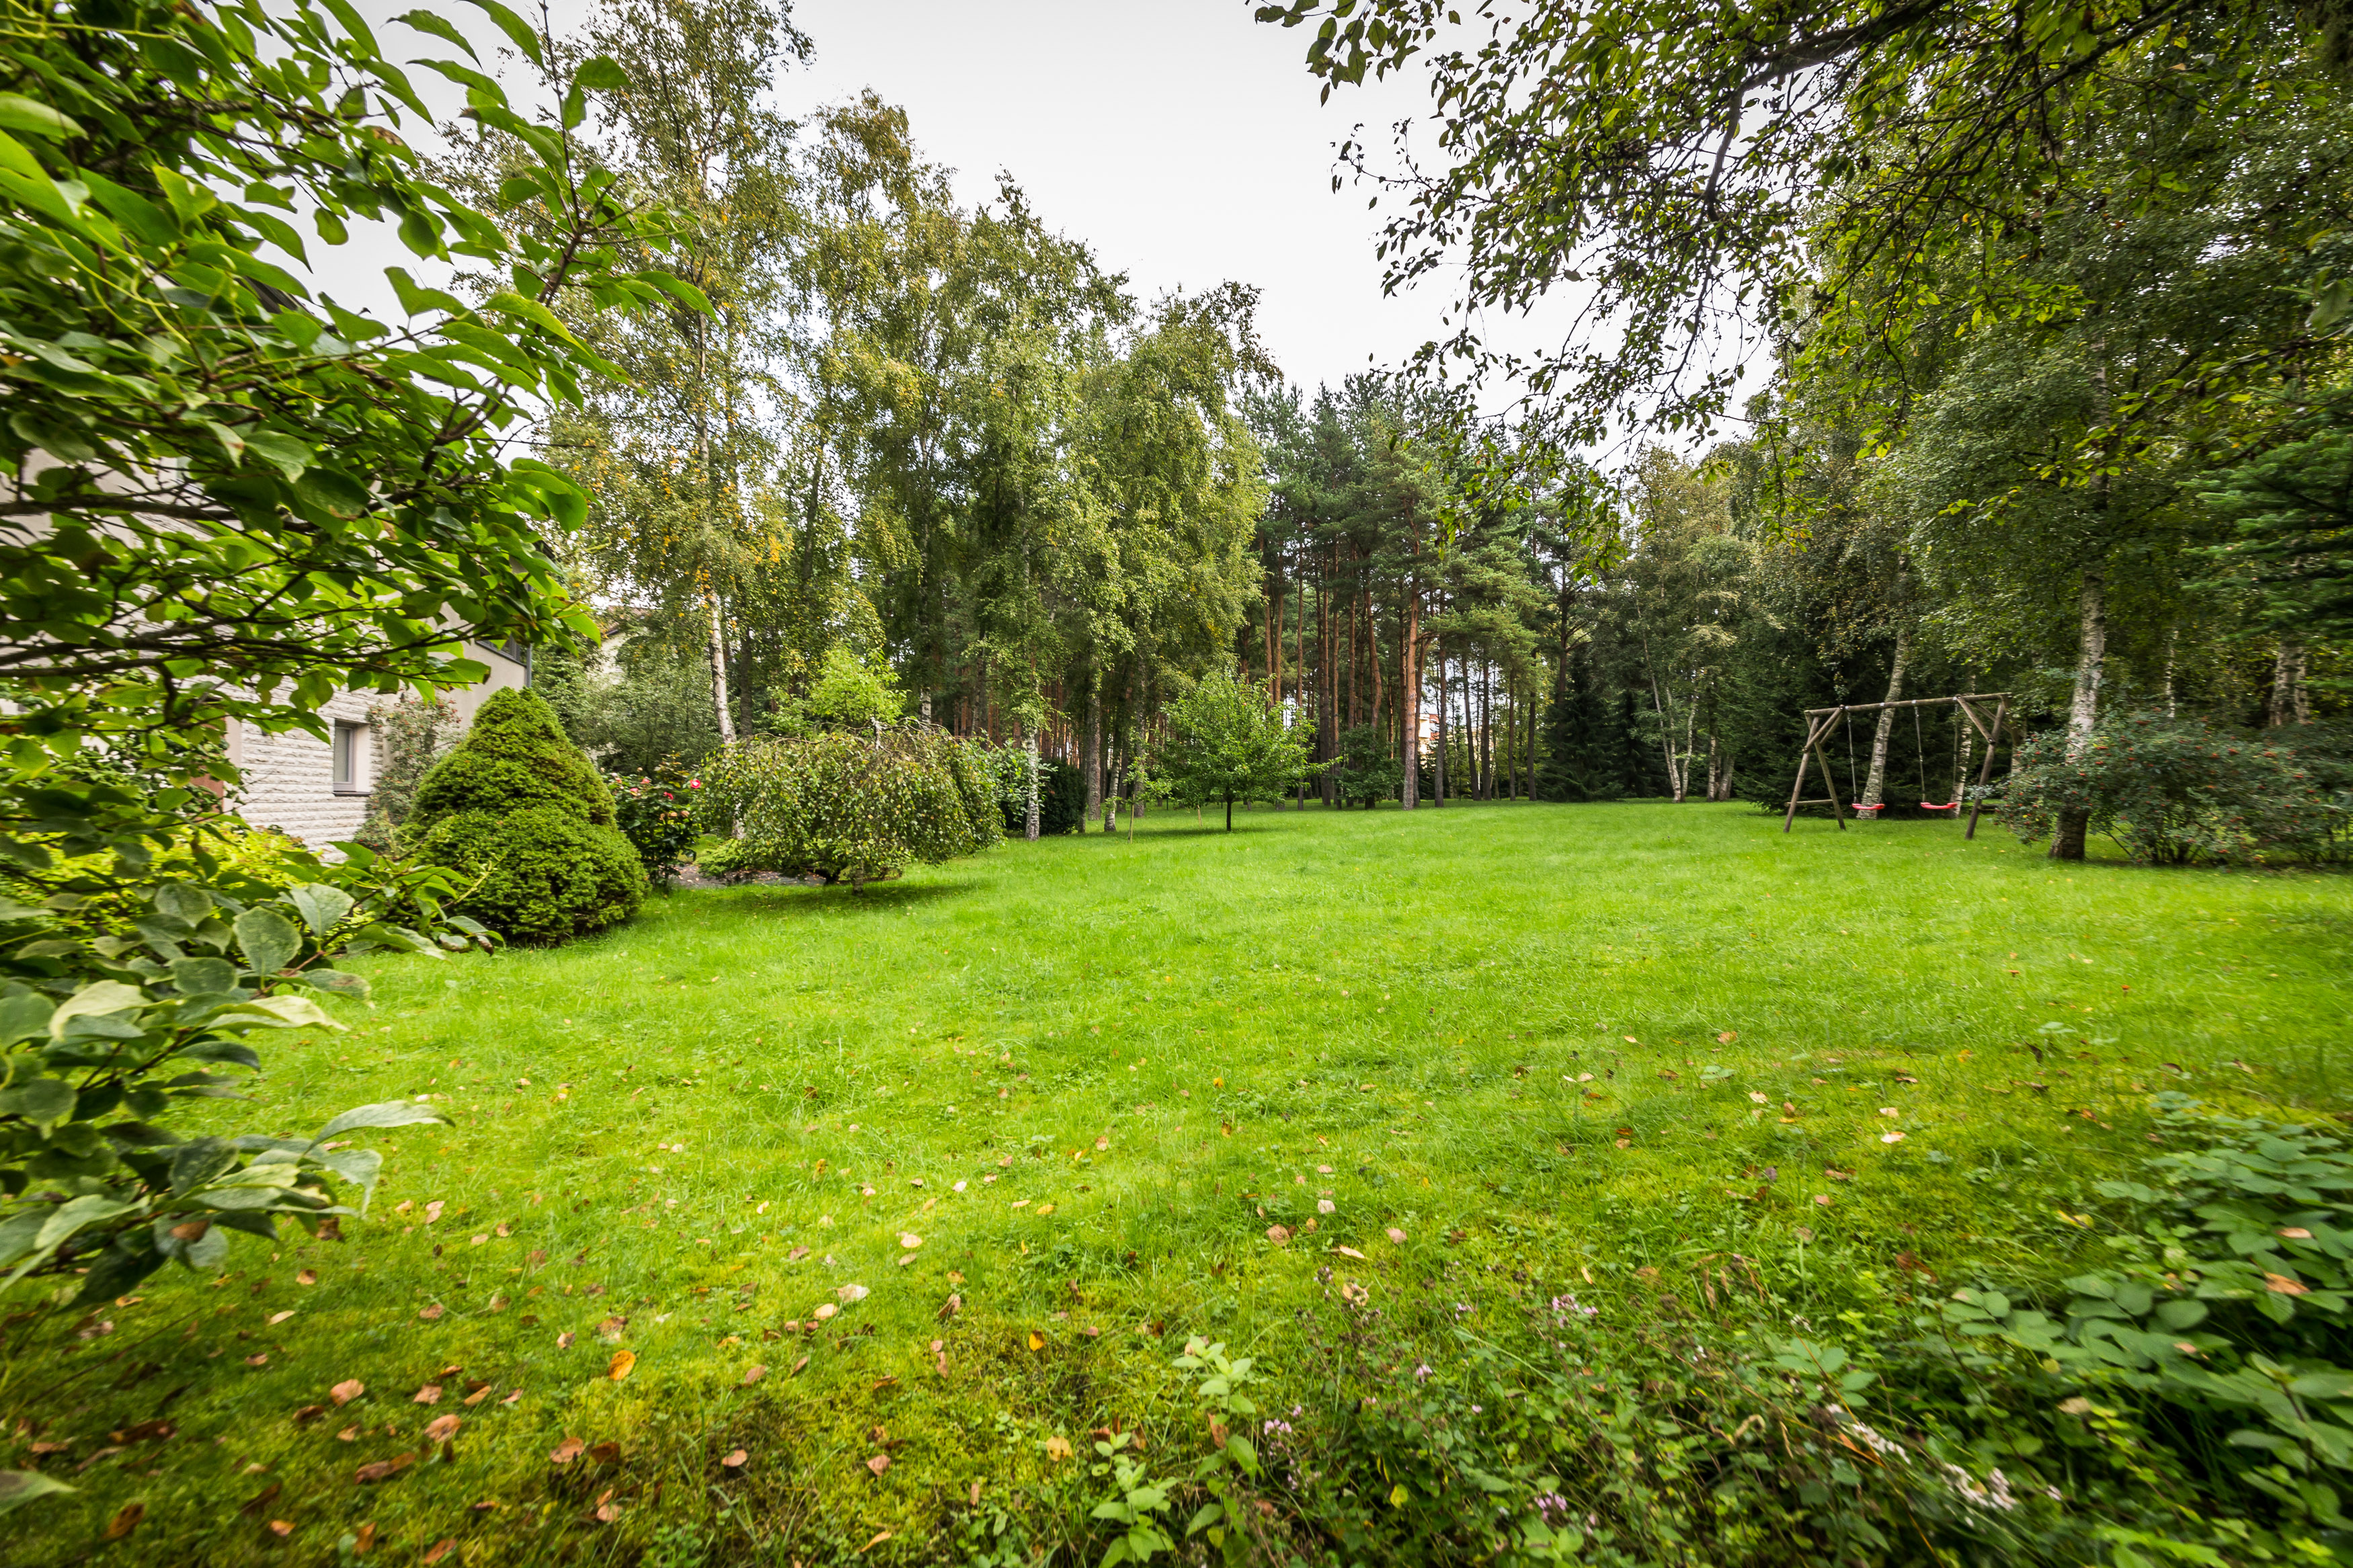 Land for Sale at Residential land plot close to the sea in Pirita, Tallinn Lauri tee 9A Pirita Tallinn, Harjumaa, 11912 Estonia